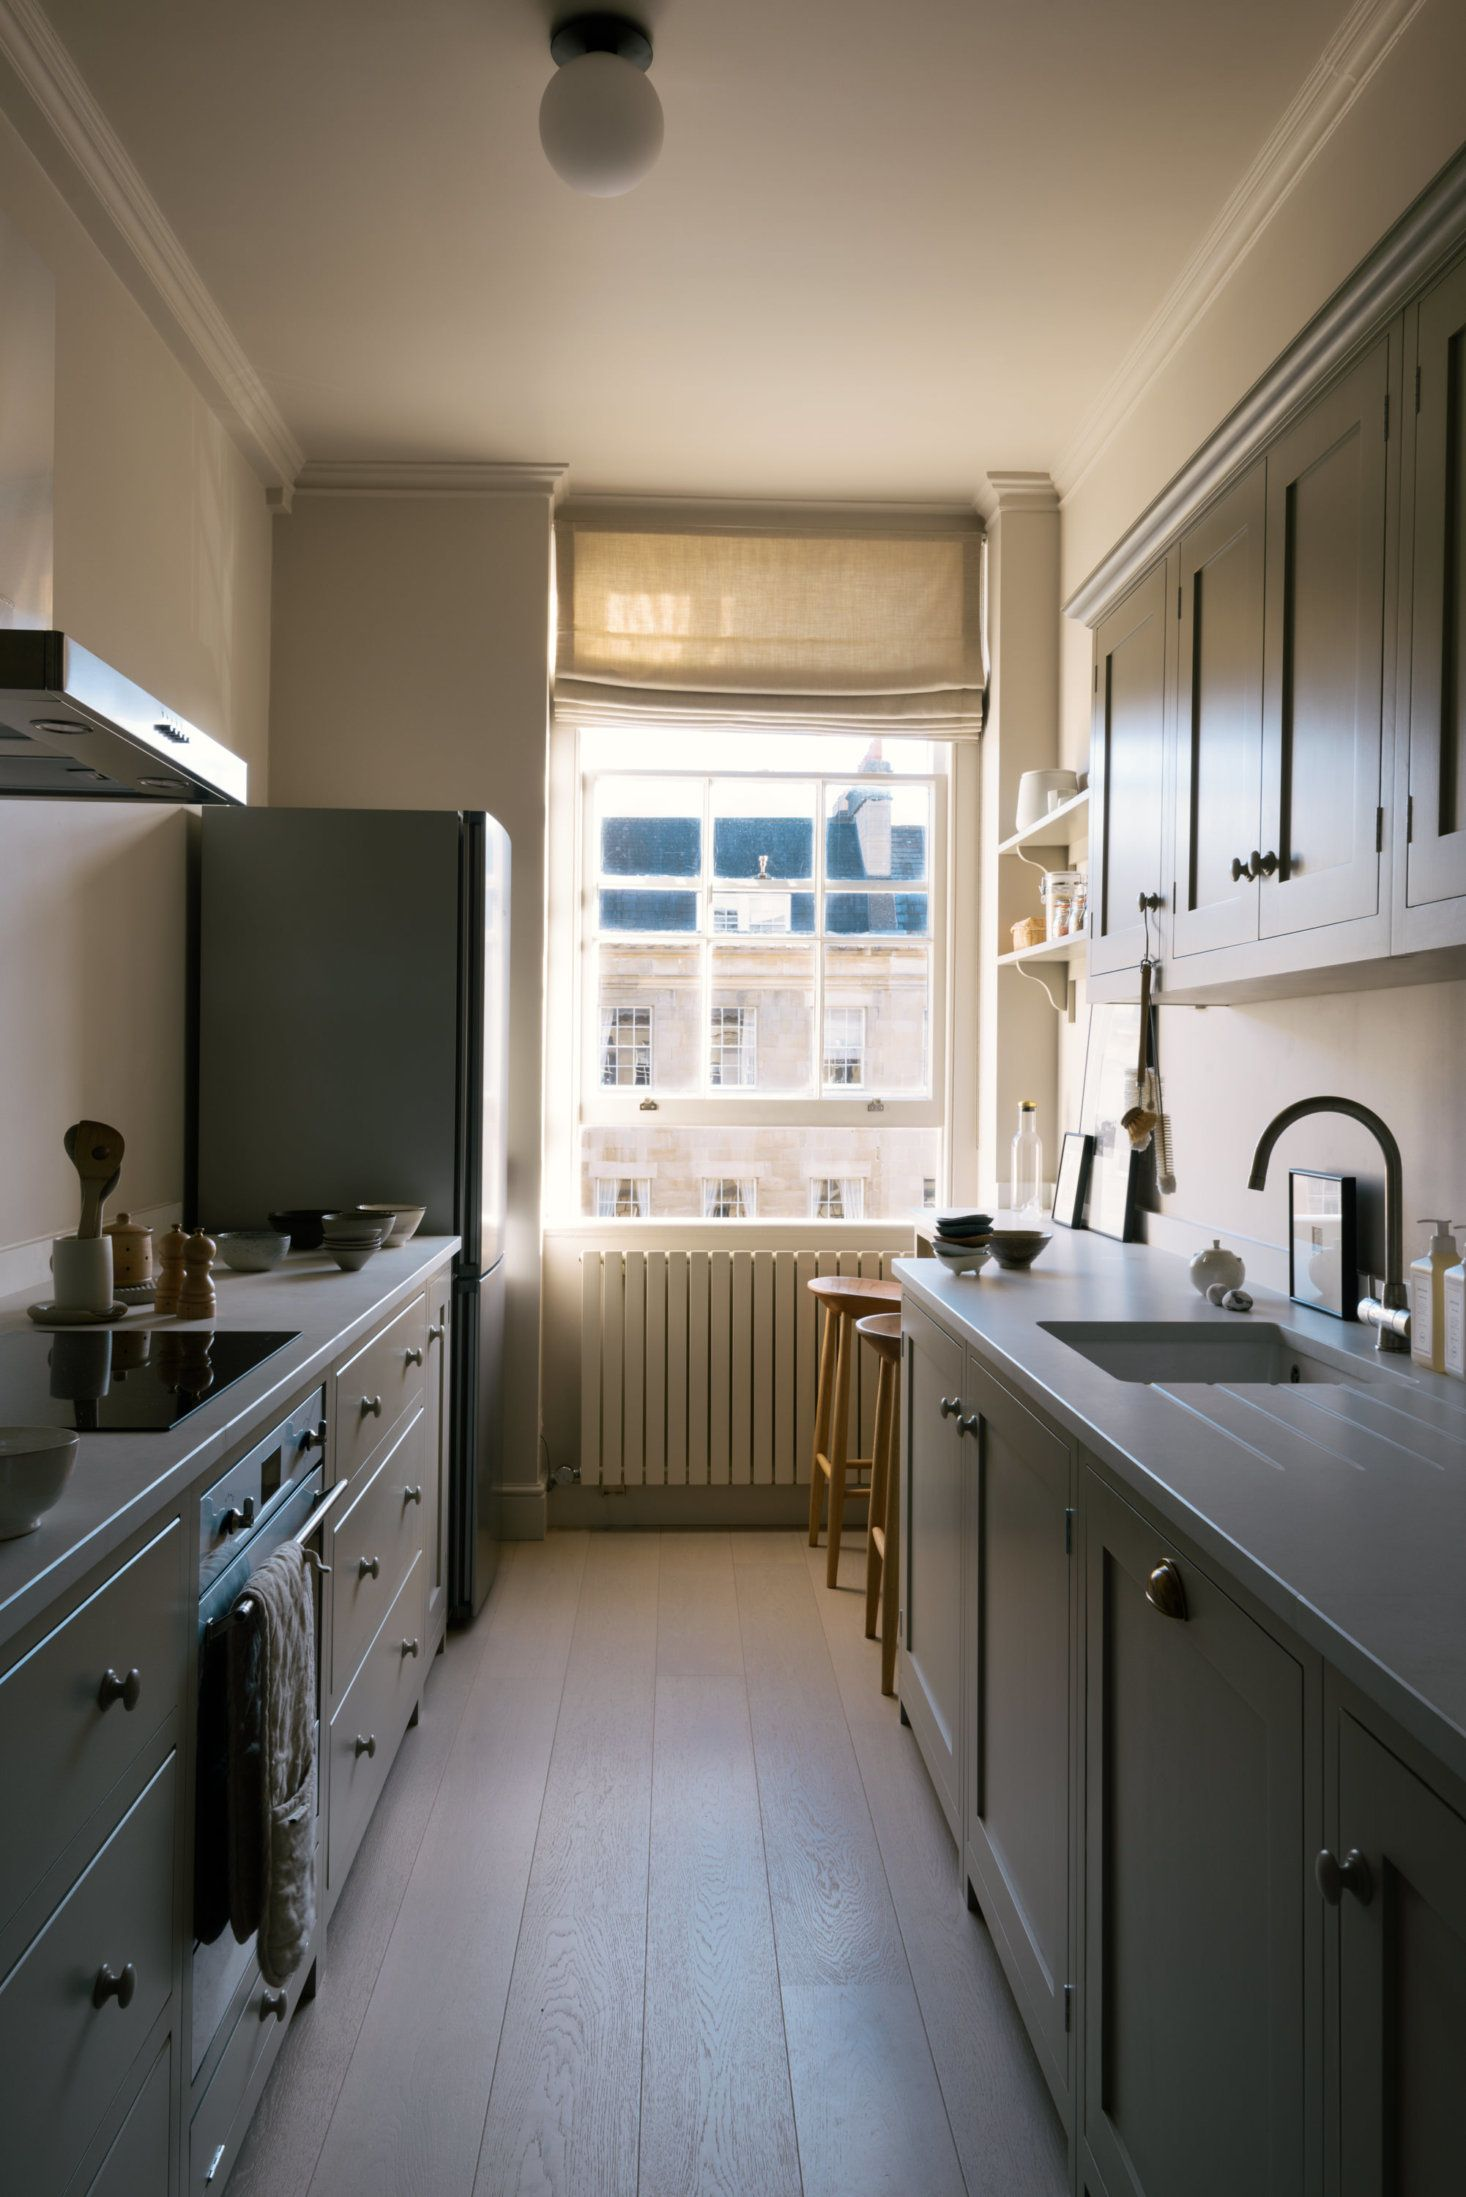 Shaker Galley Kitchen A Stylish Small Design By Devol For The